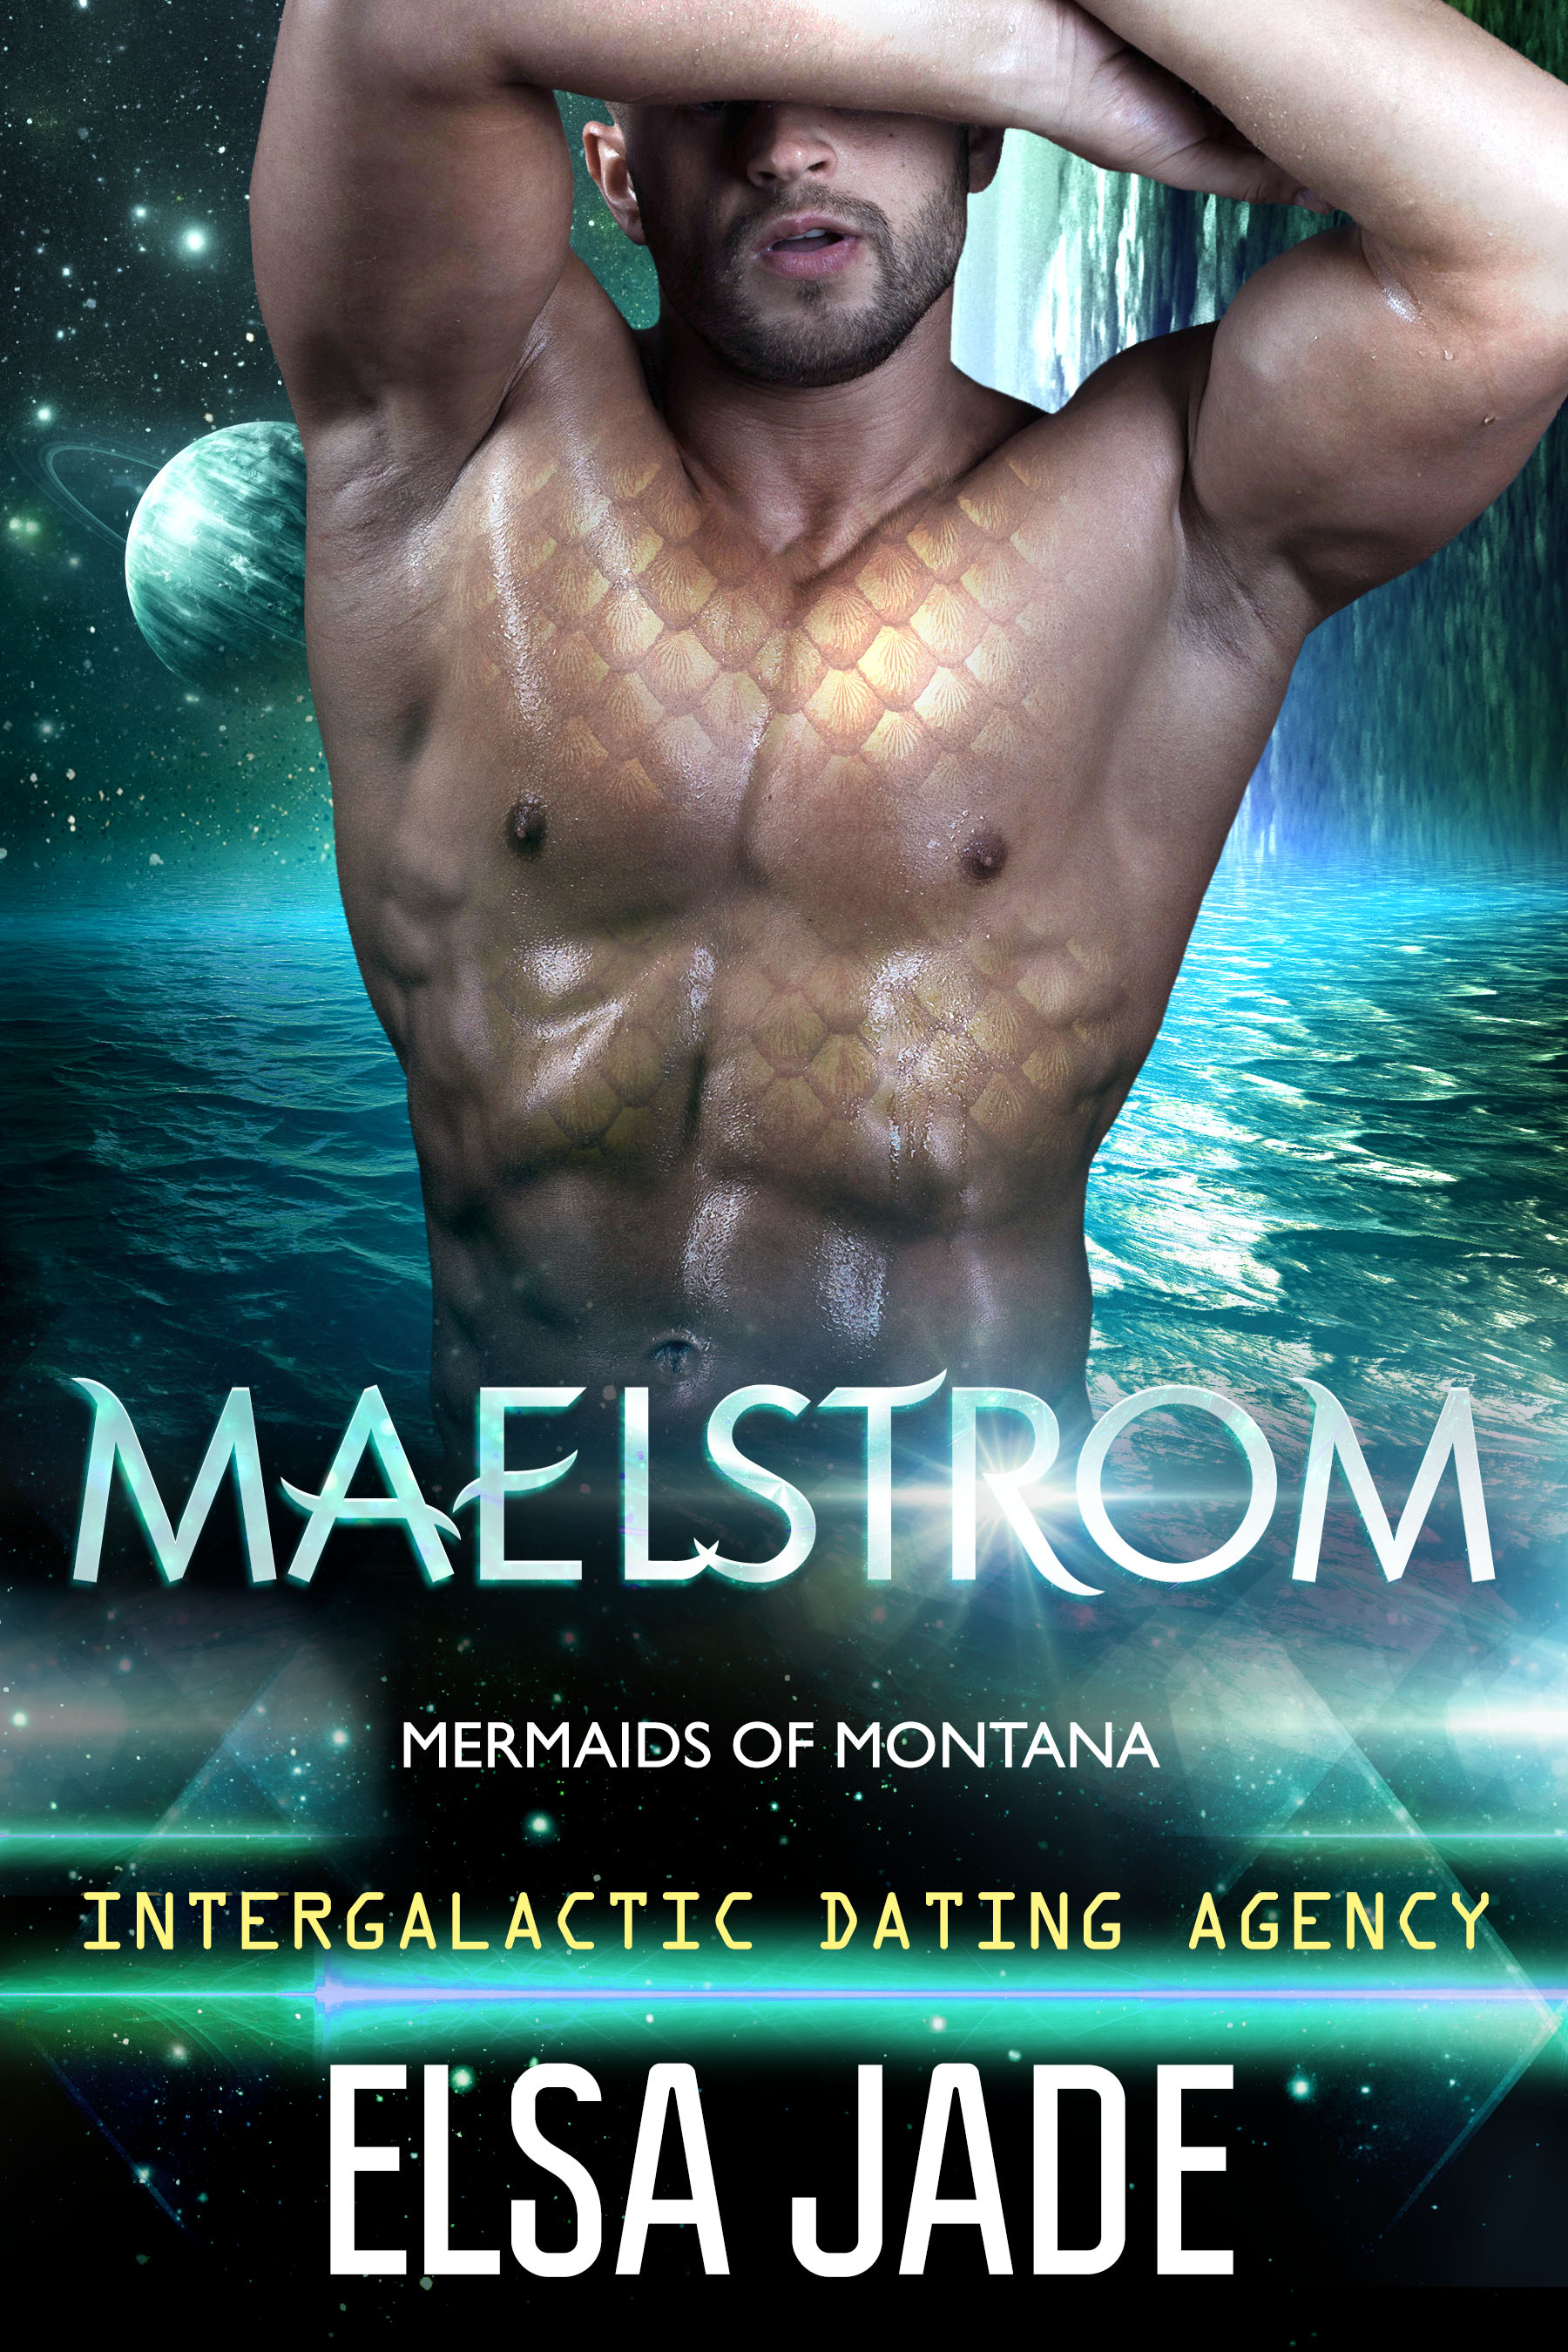 Maelstrom: Mermaids of Montana by Elsa Jade science fiction romance